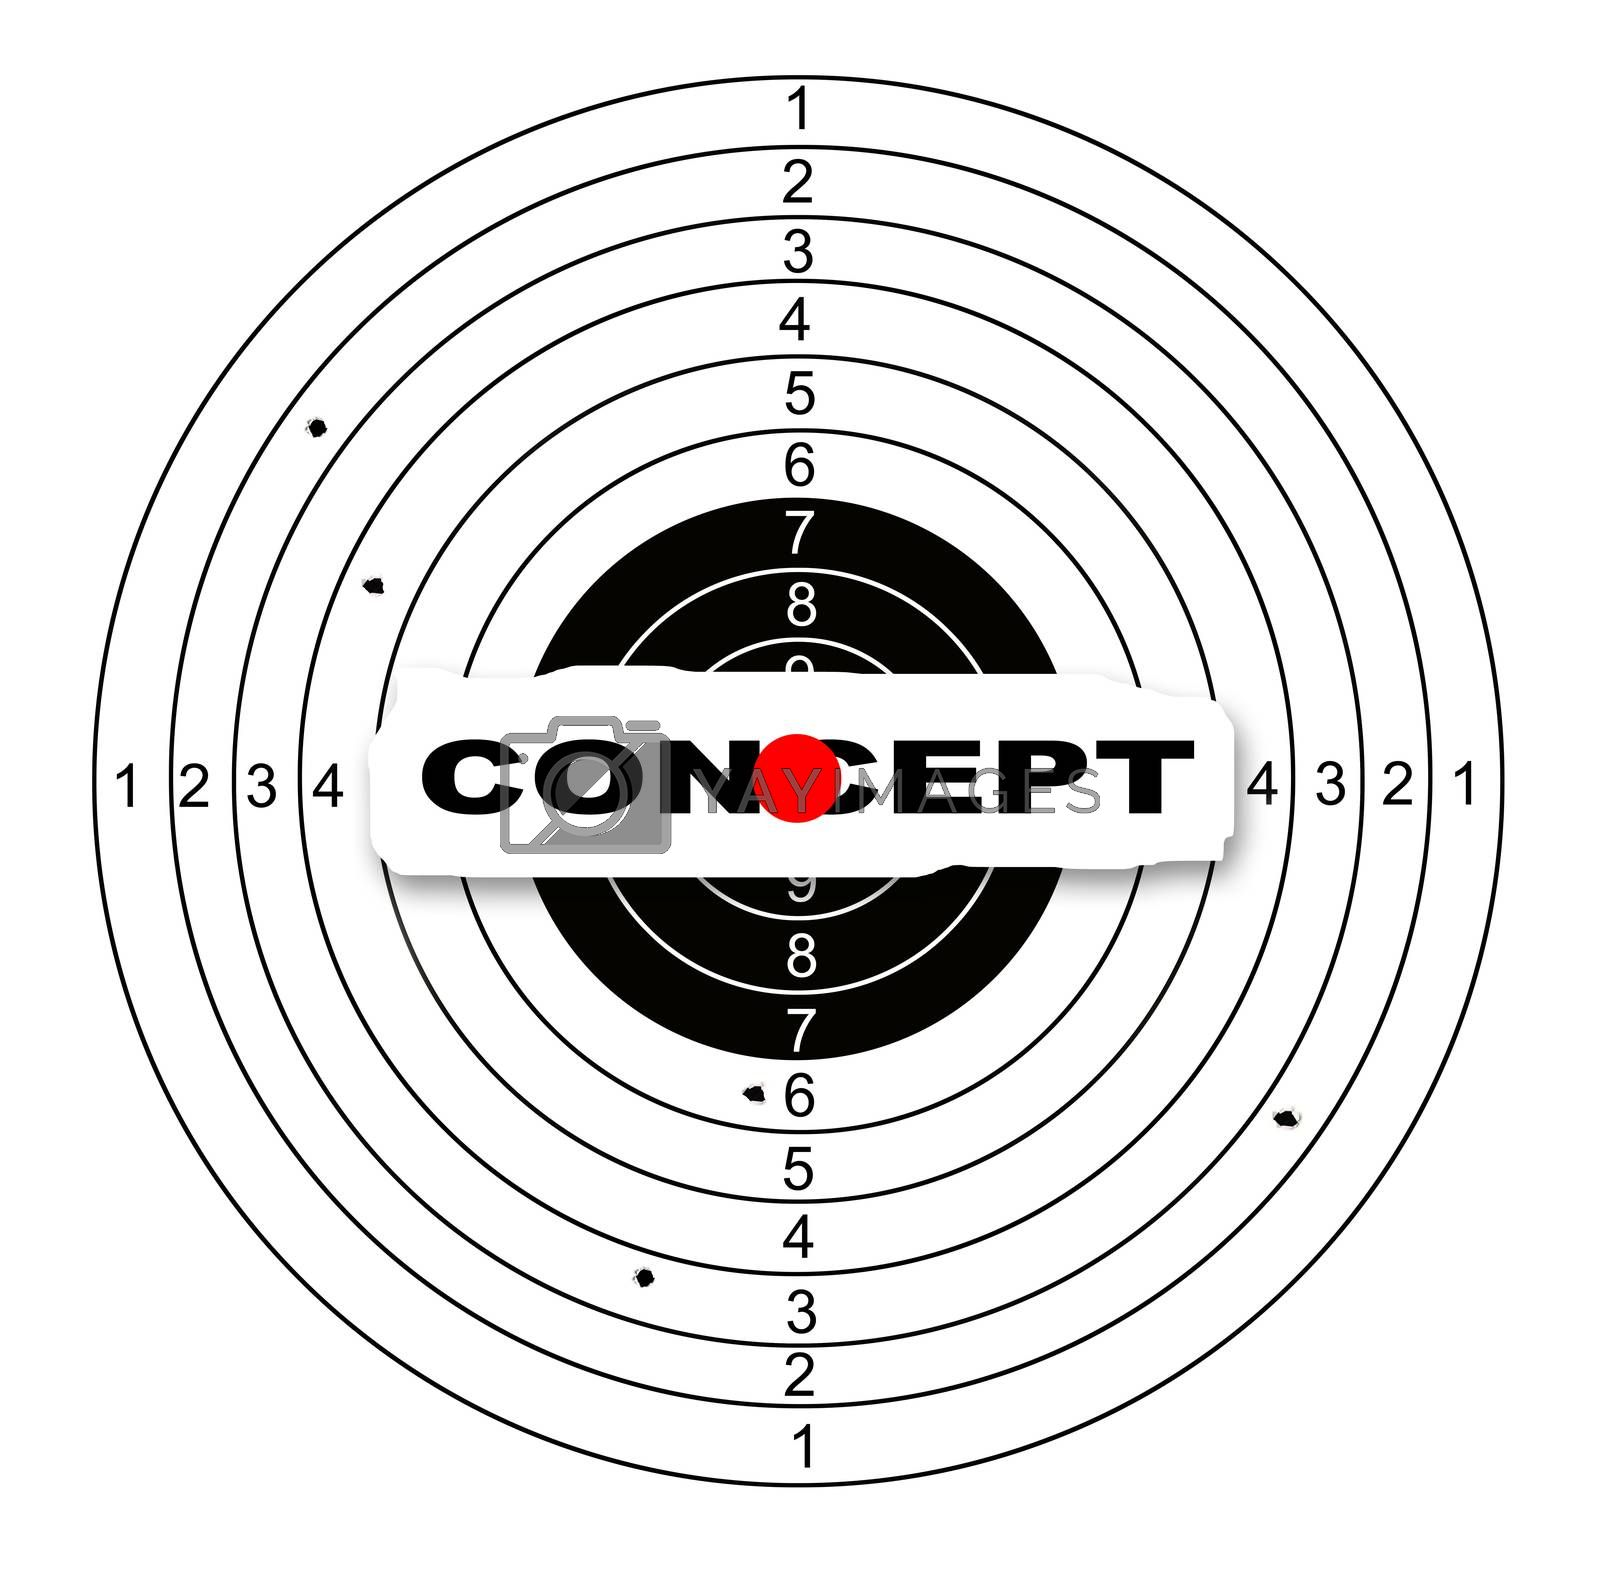 Shooting target with word concept made in 2d software